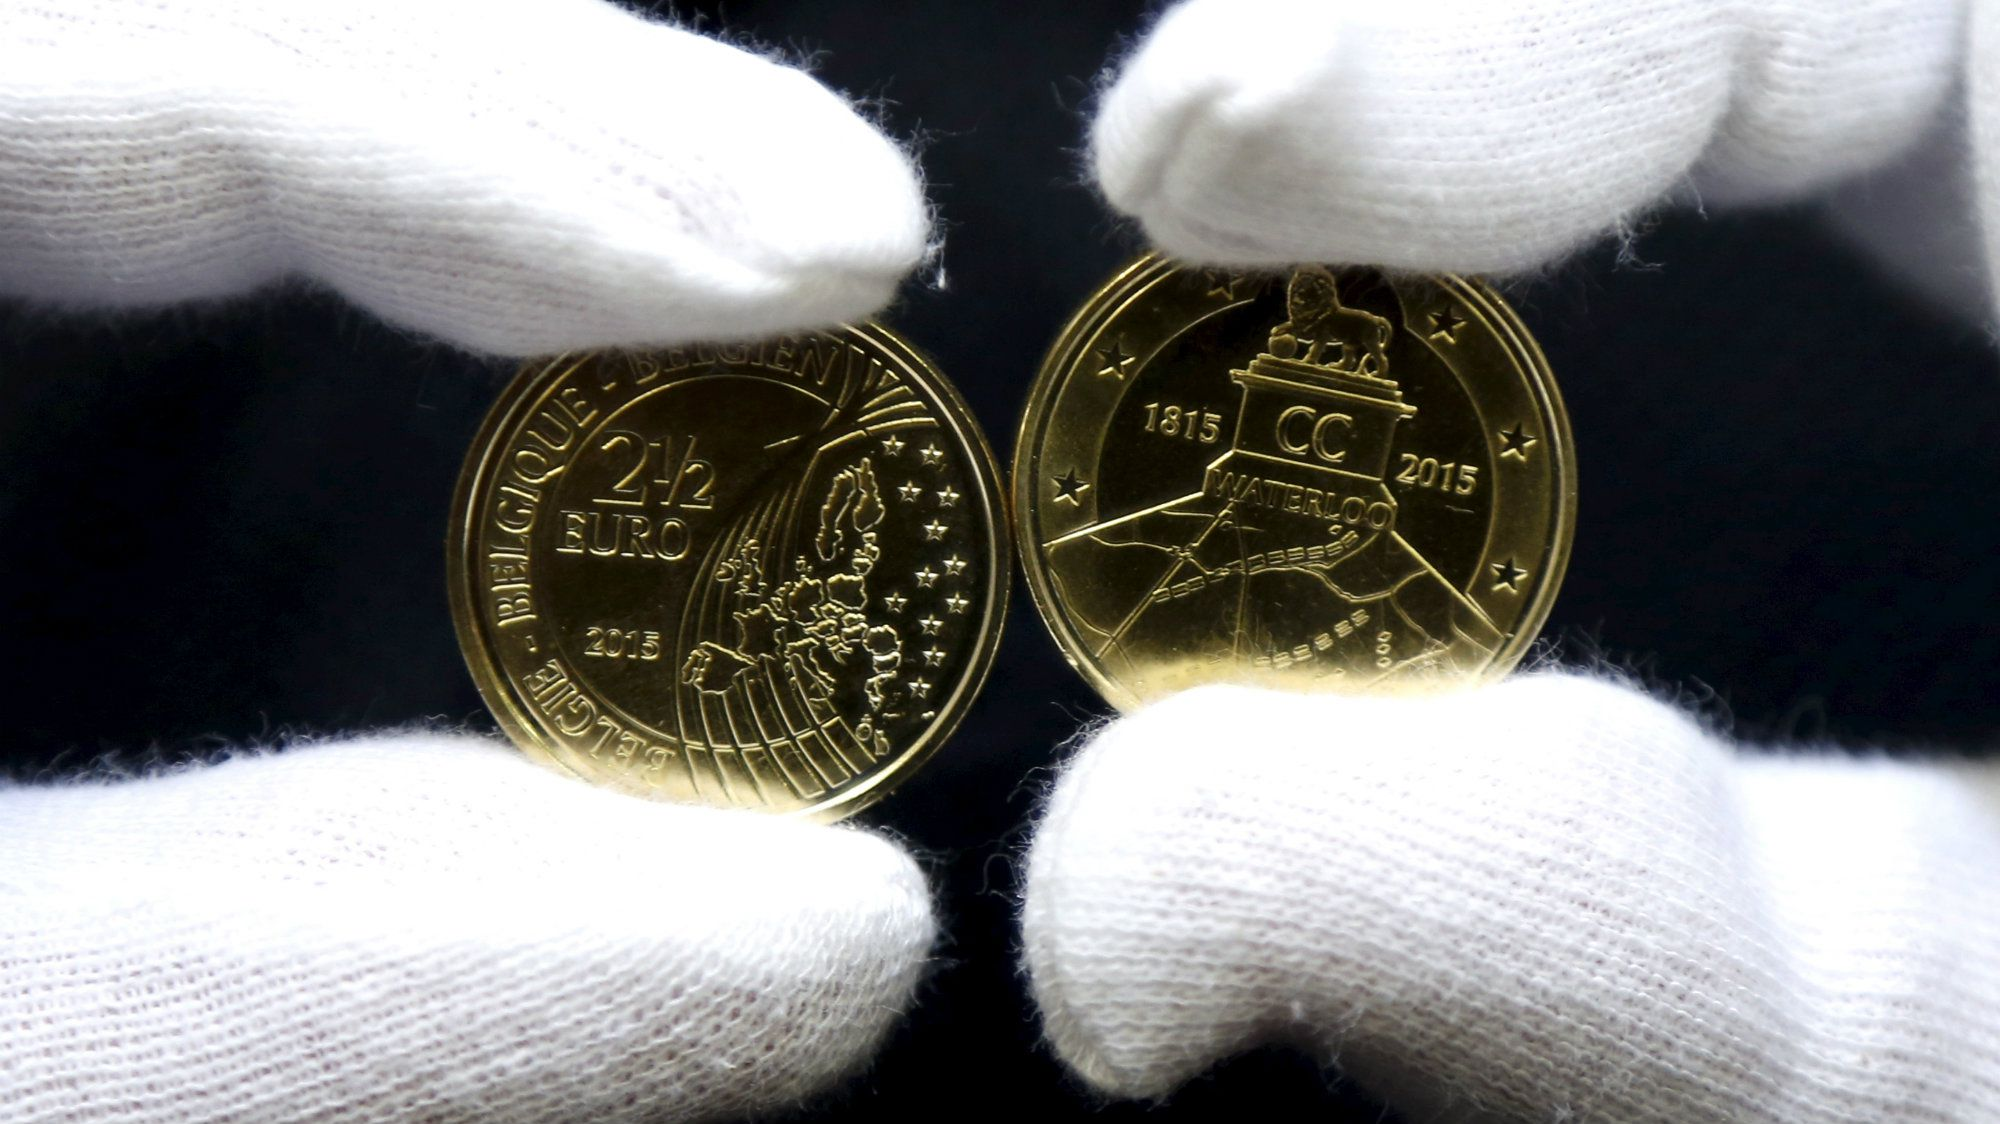 A worker displays newly minted commemorative 2.5 euro coins to mark the bicentennial of the battle of Waterloo, at Belgium's Royal Mint in Brussels June 8, 2015.